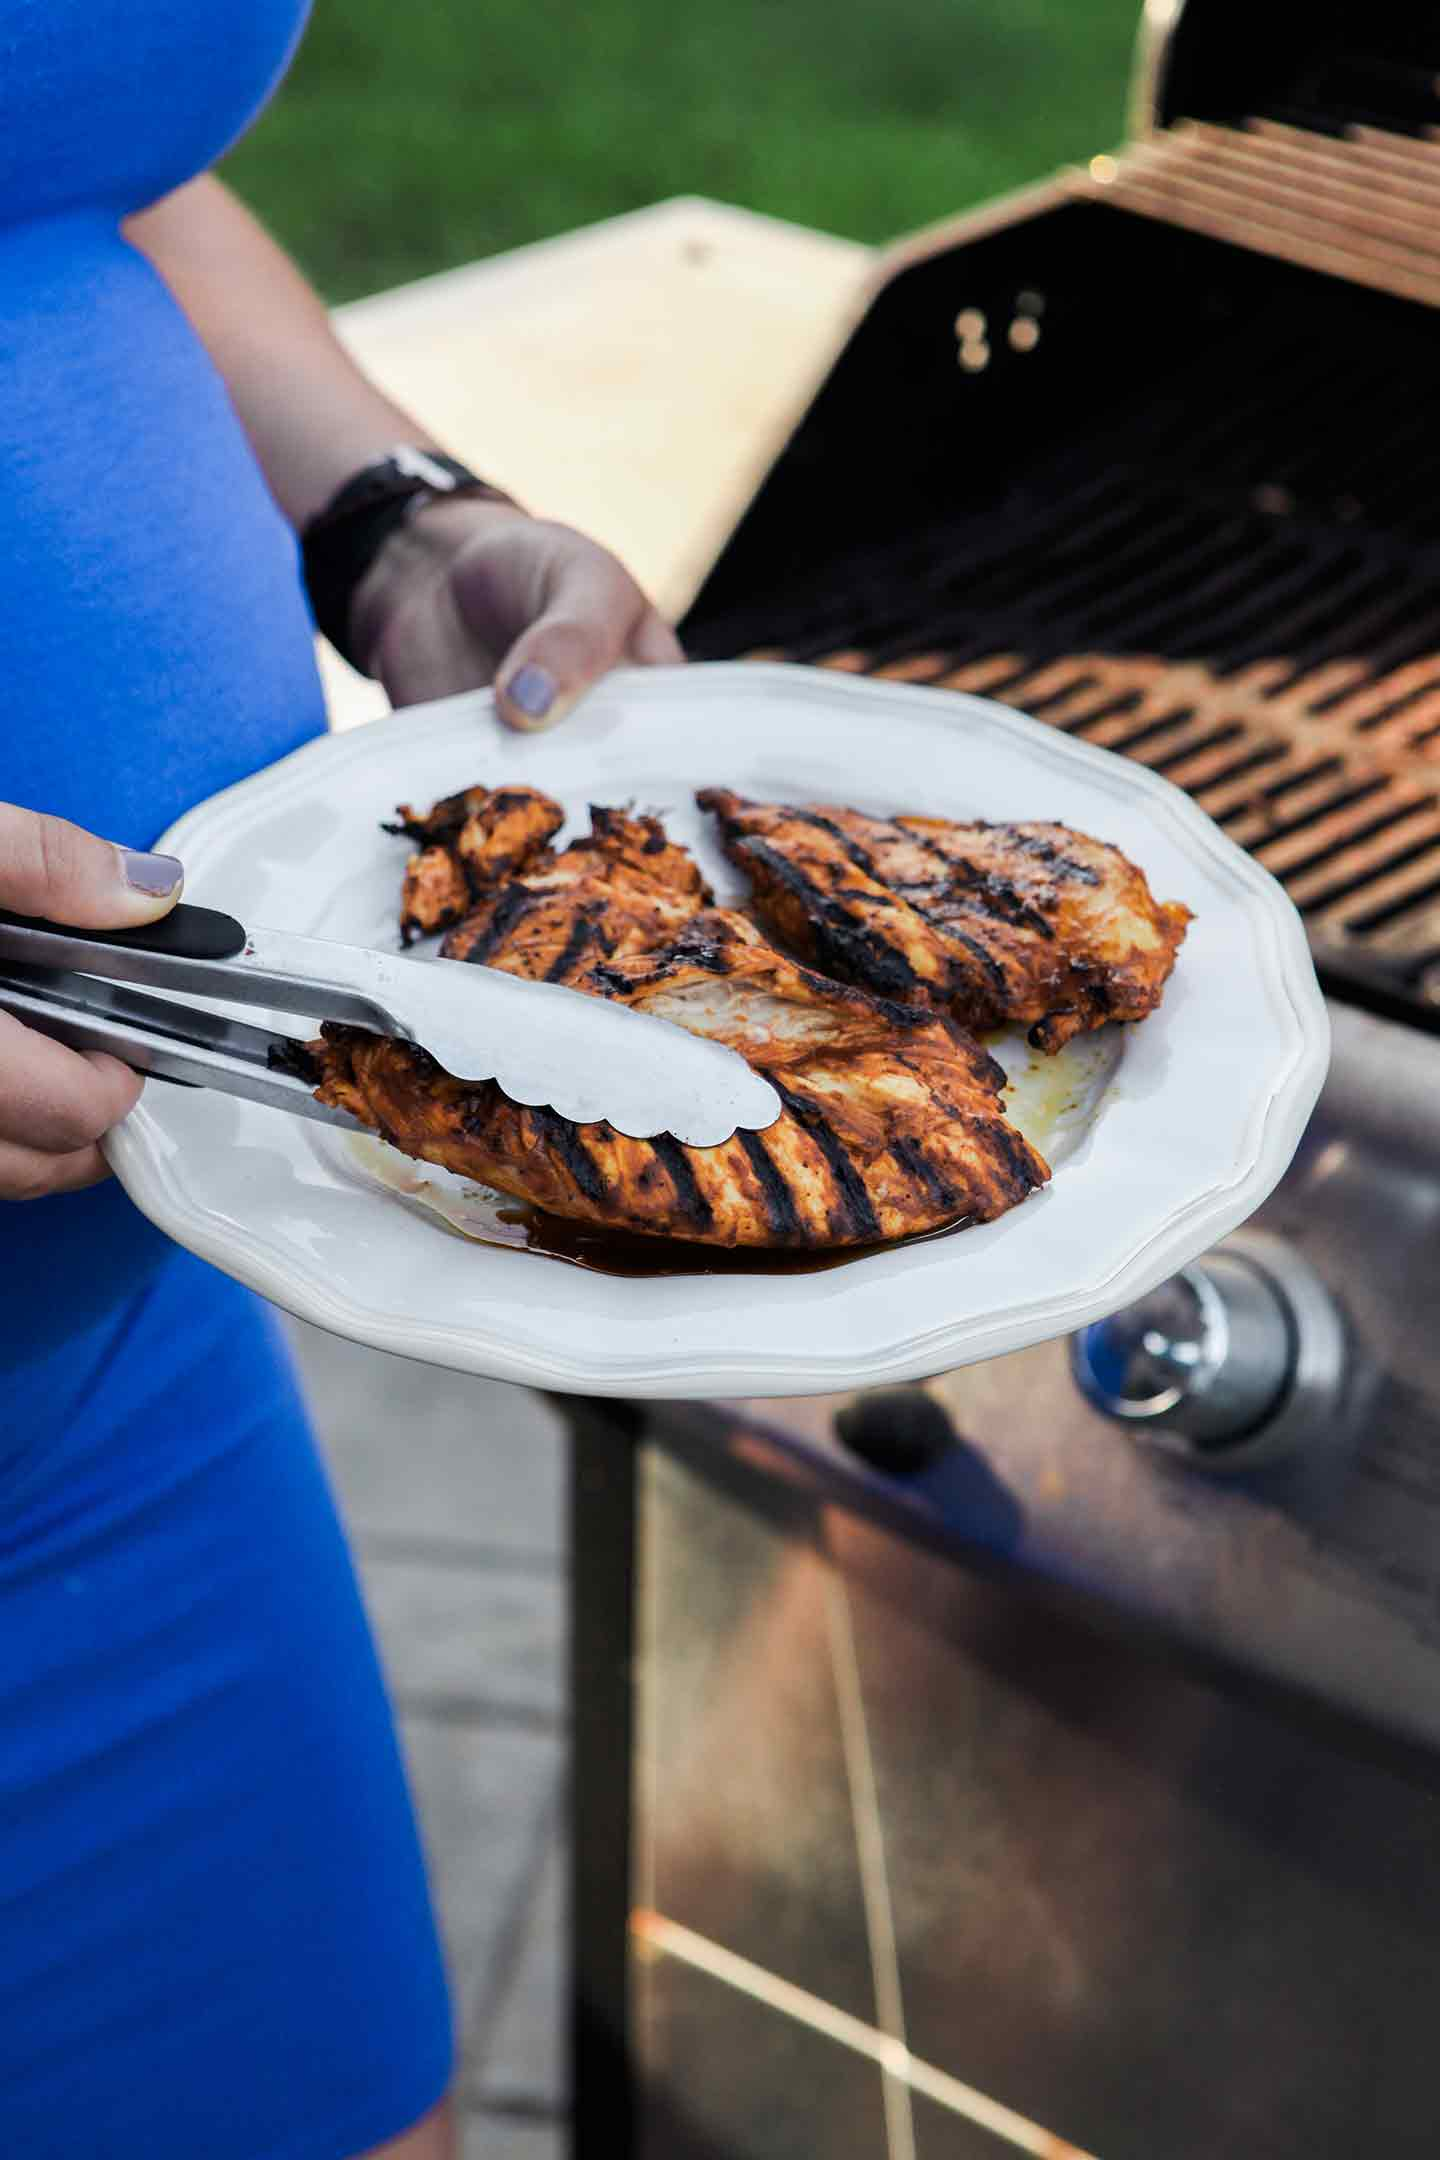 A woman holds barbecue chicken next to the grill